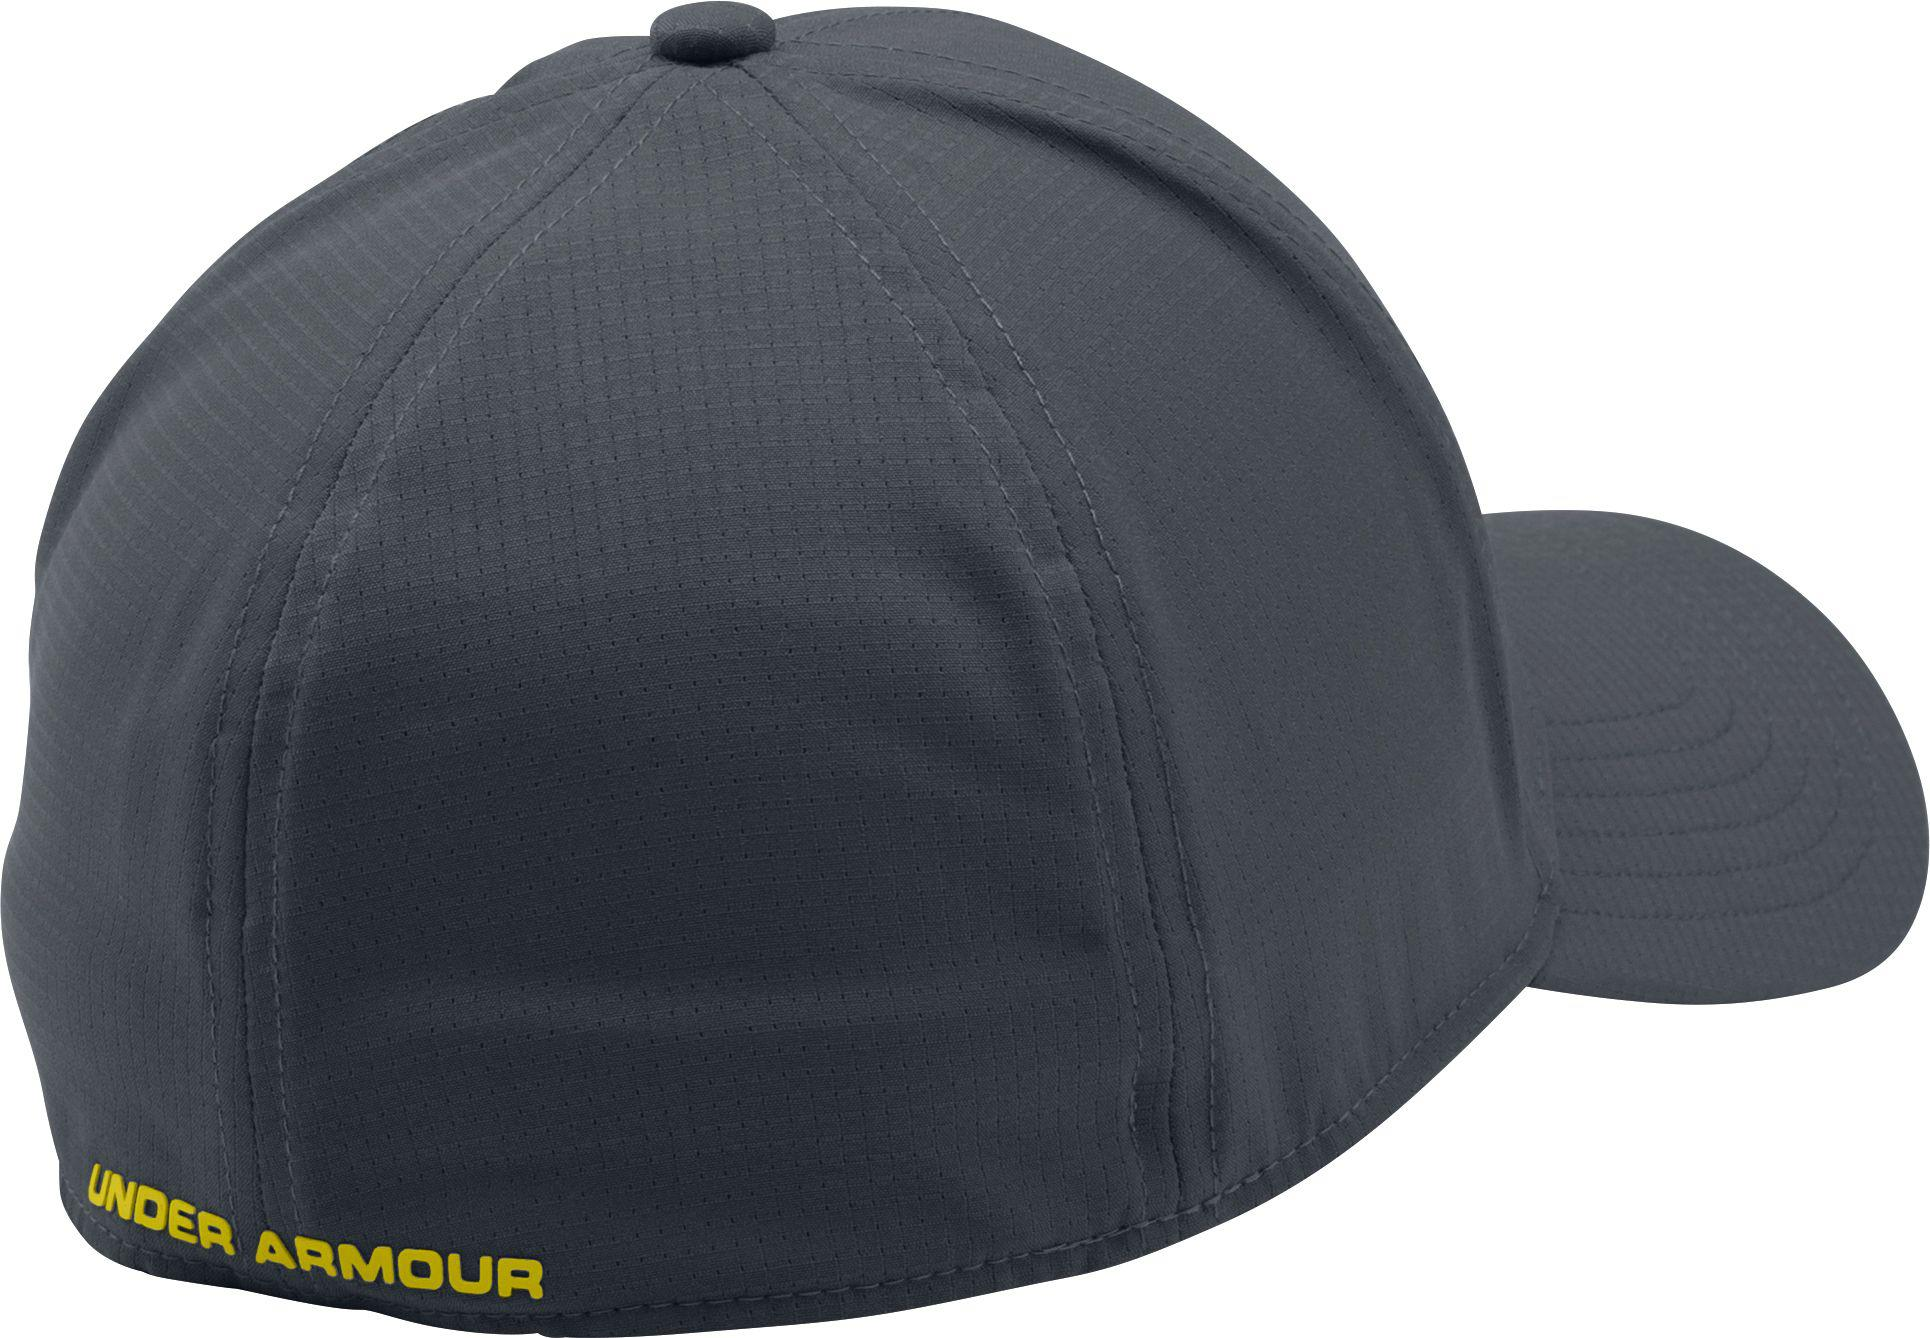 6d57b3ac9ea ... inexpensive under armour gray thermocline armourvent cap for men lyst.  view fullscreen 62f99 d7dbd